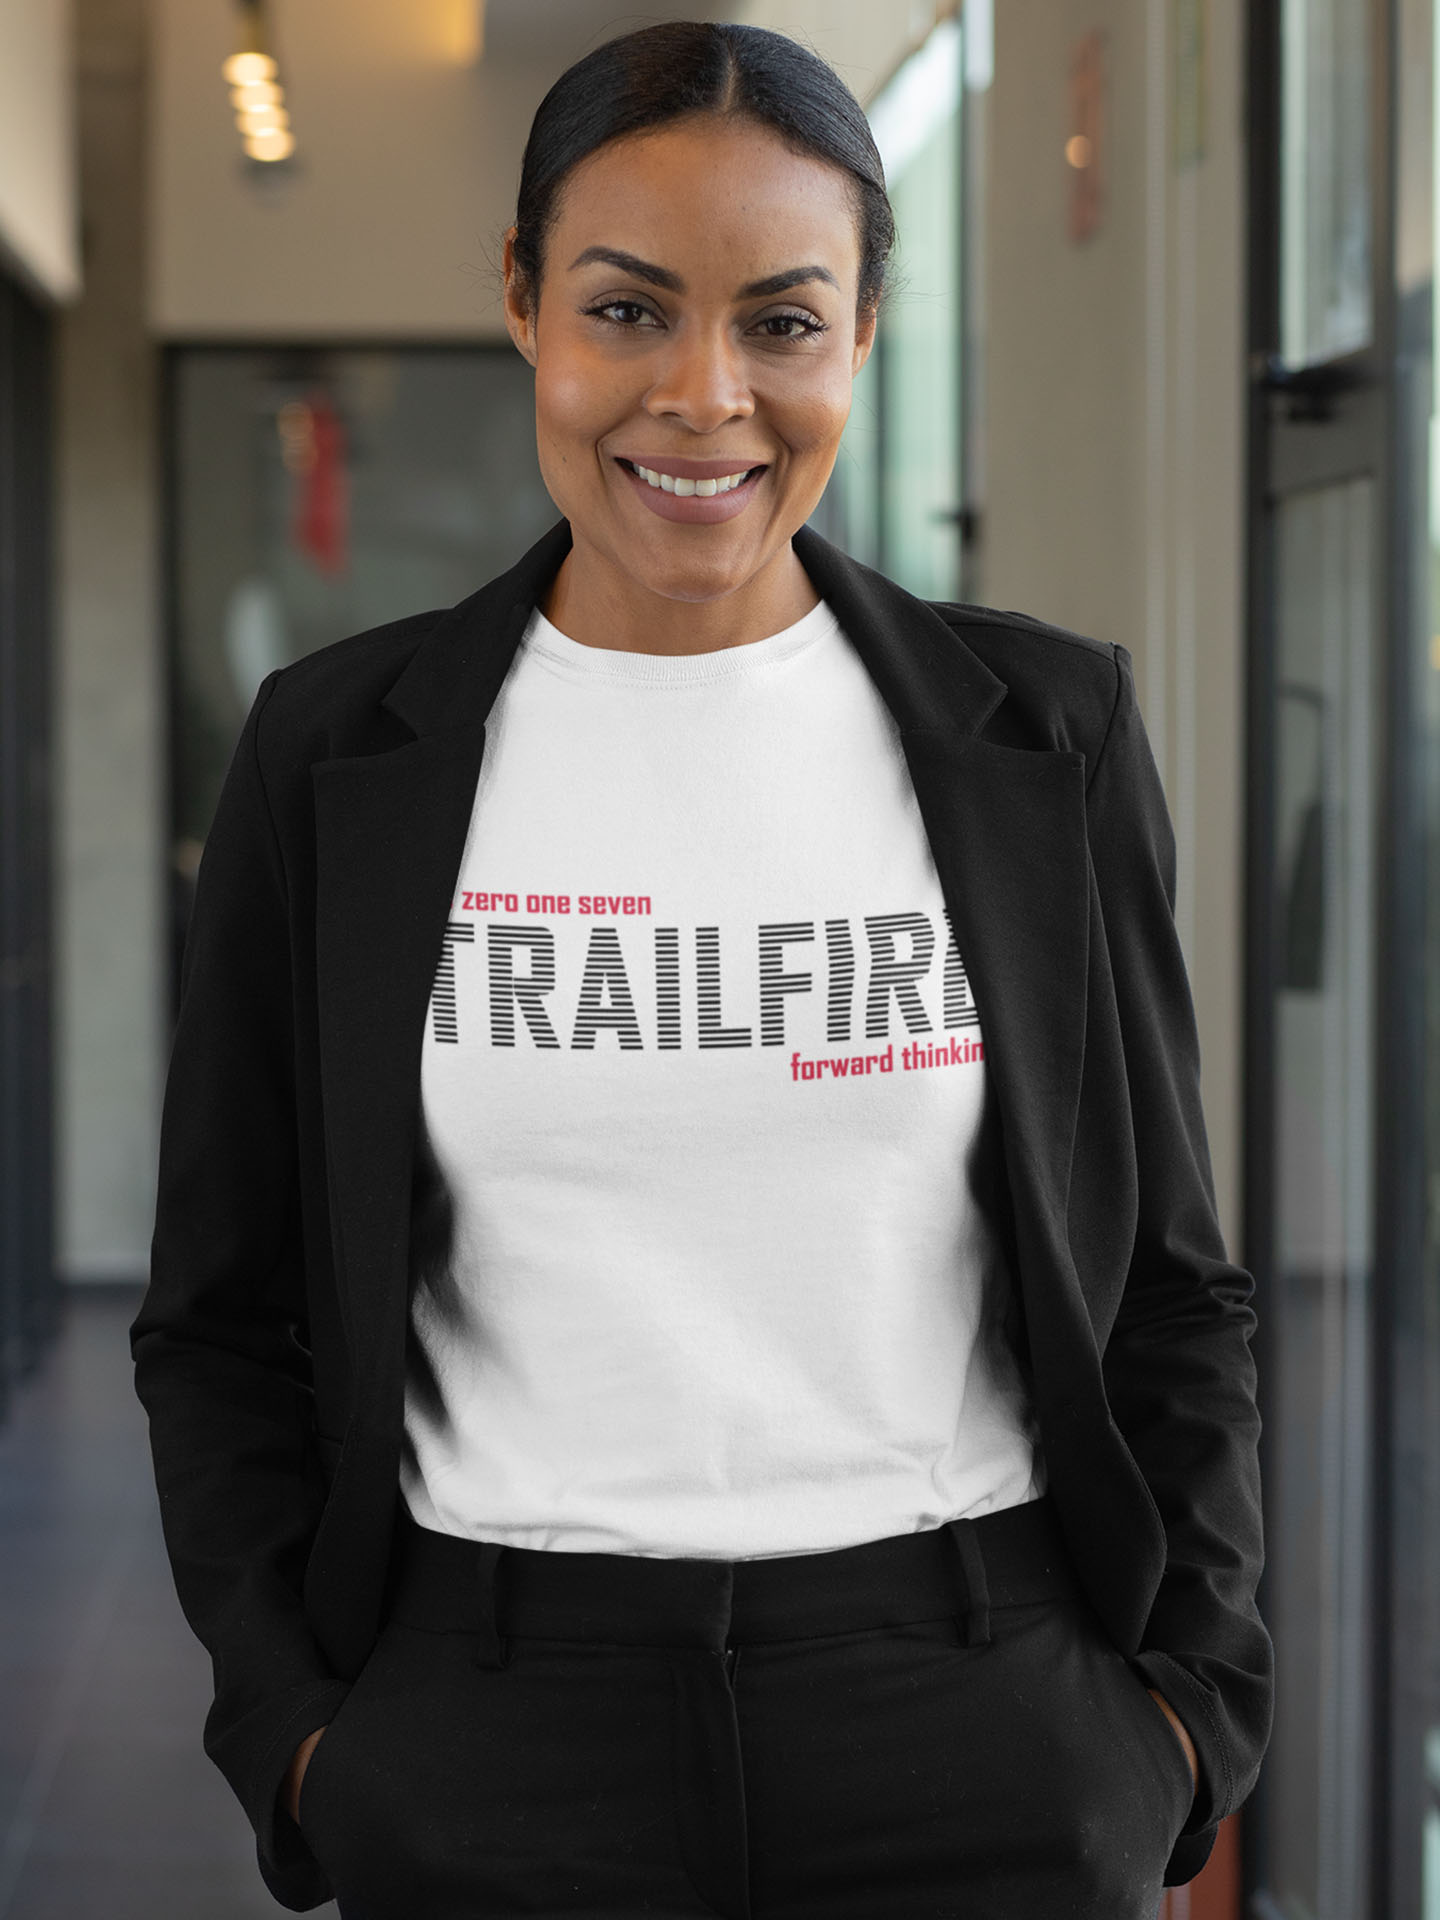 Spredshirt-Prints-Trailfire_0065_t-shirt-mockup-featuring-a-professional-woman-31701